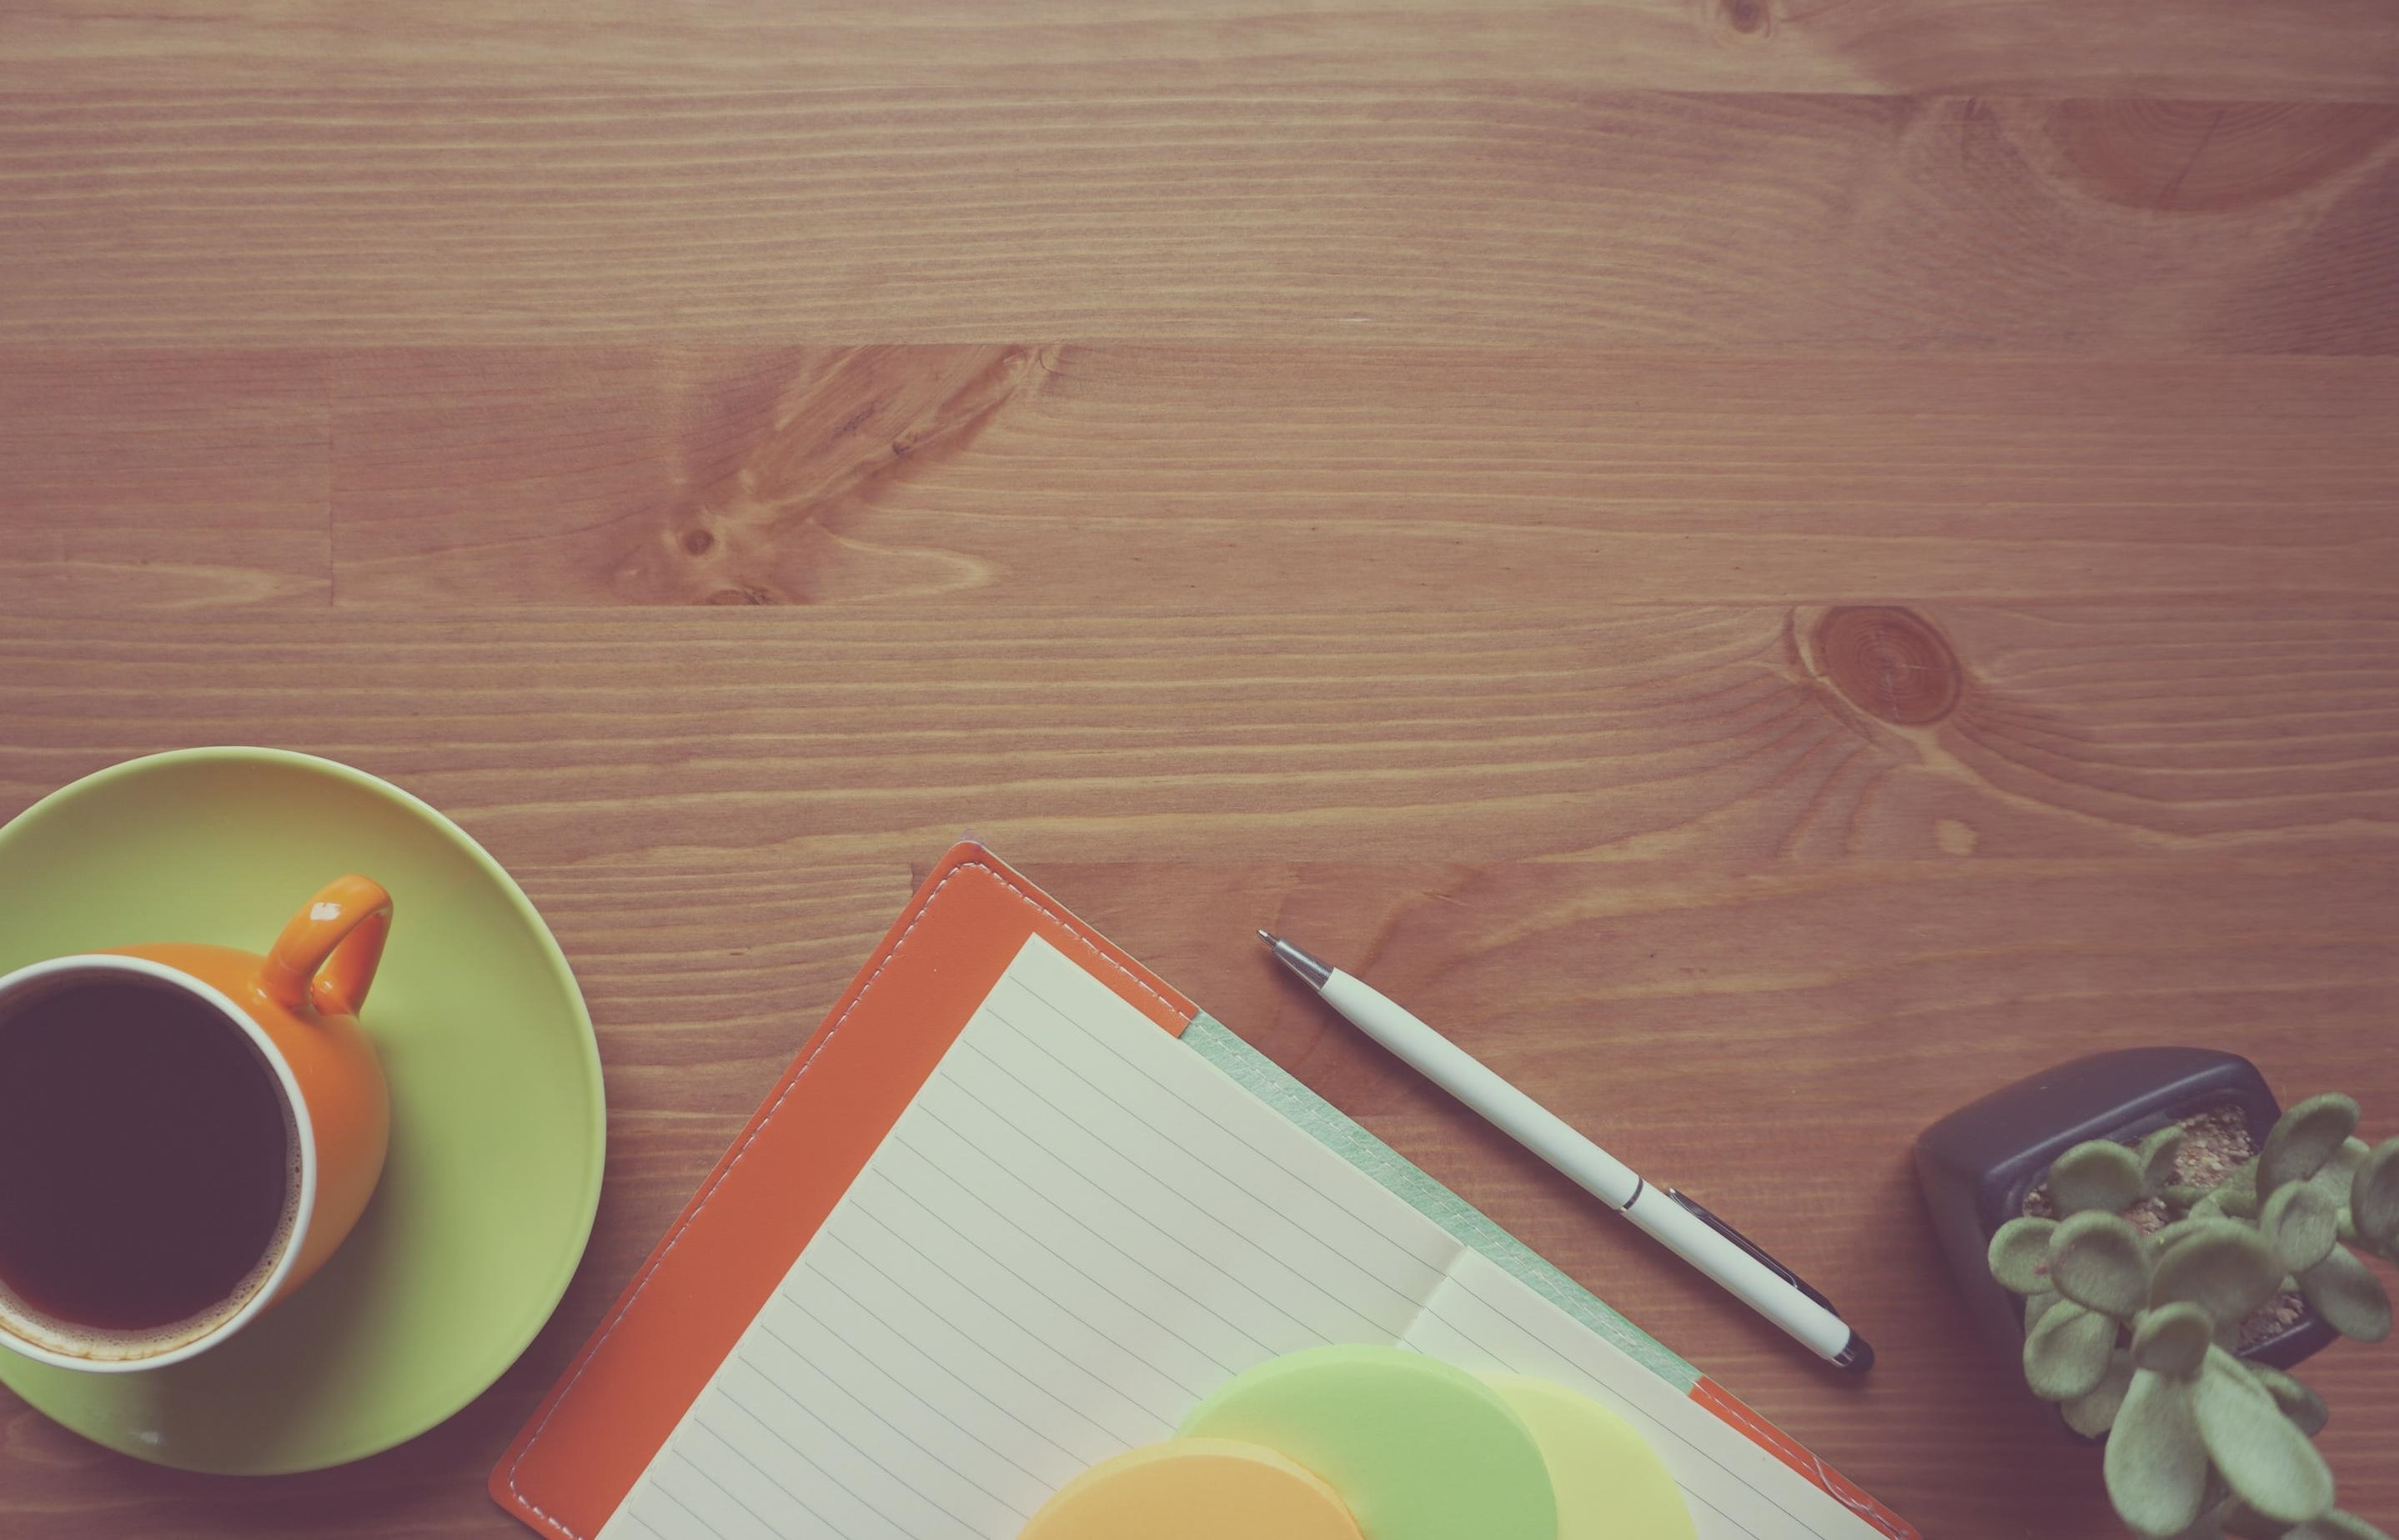 white pen beside notebook and coffee cup